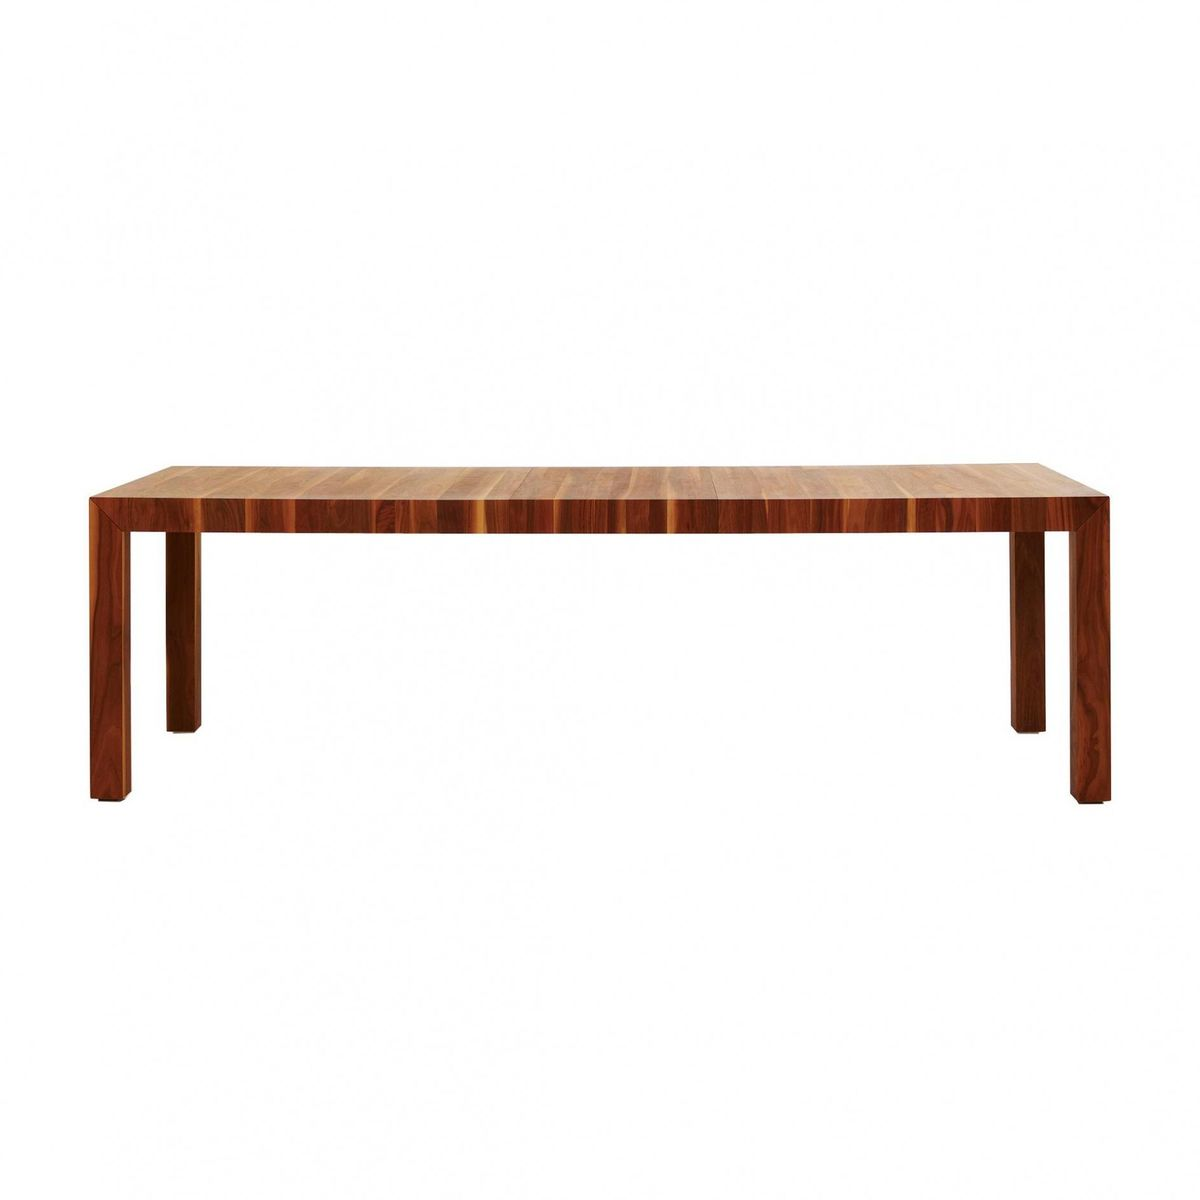 Volta solid wood dining table extendable more for Solid wood dining table